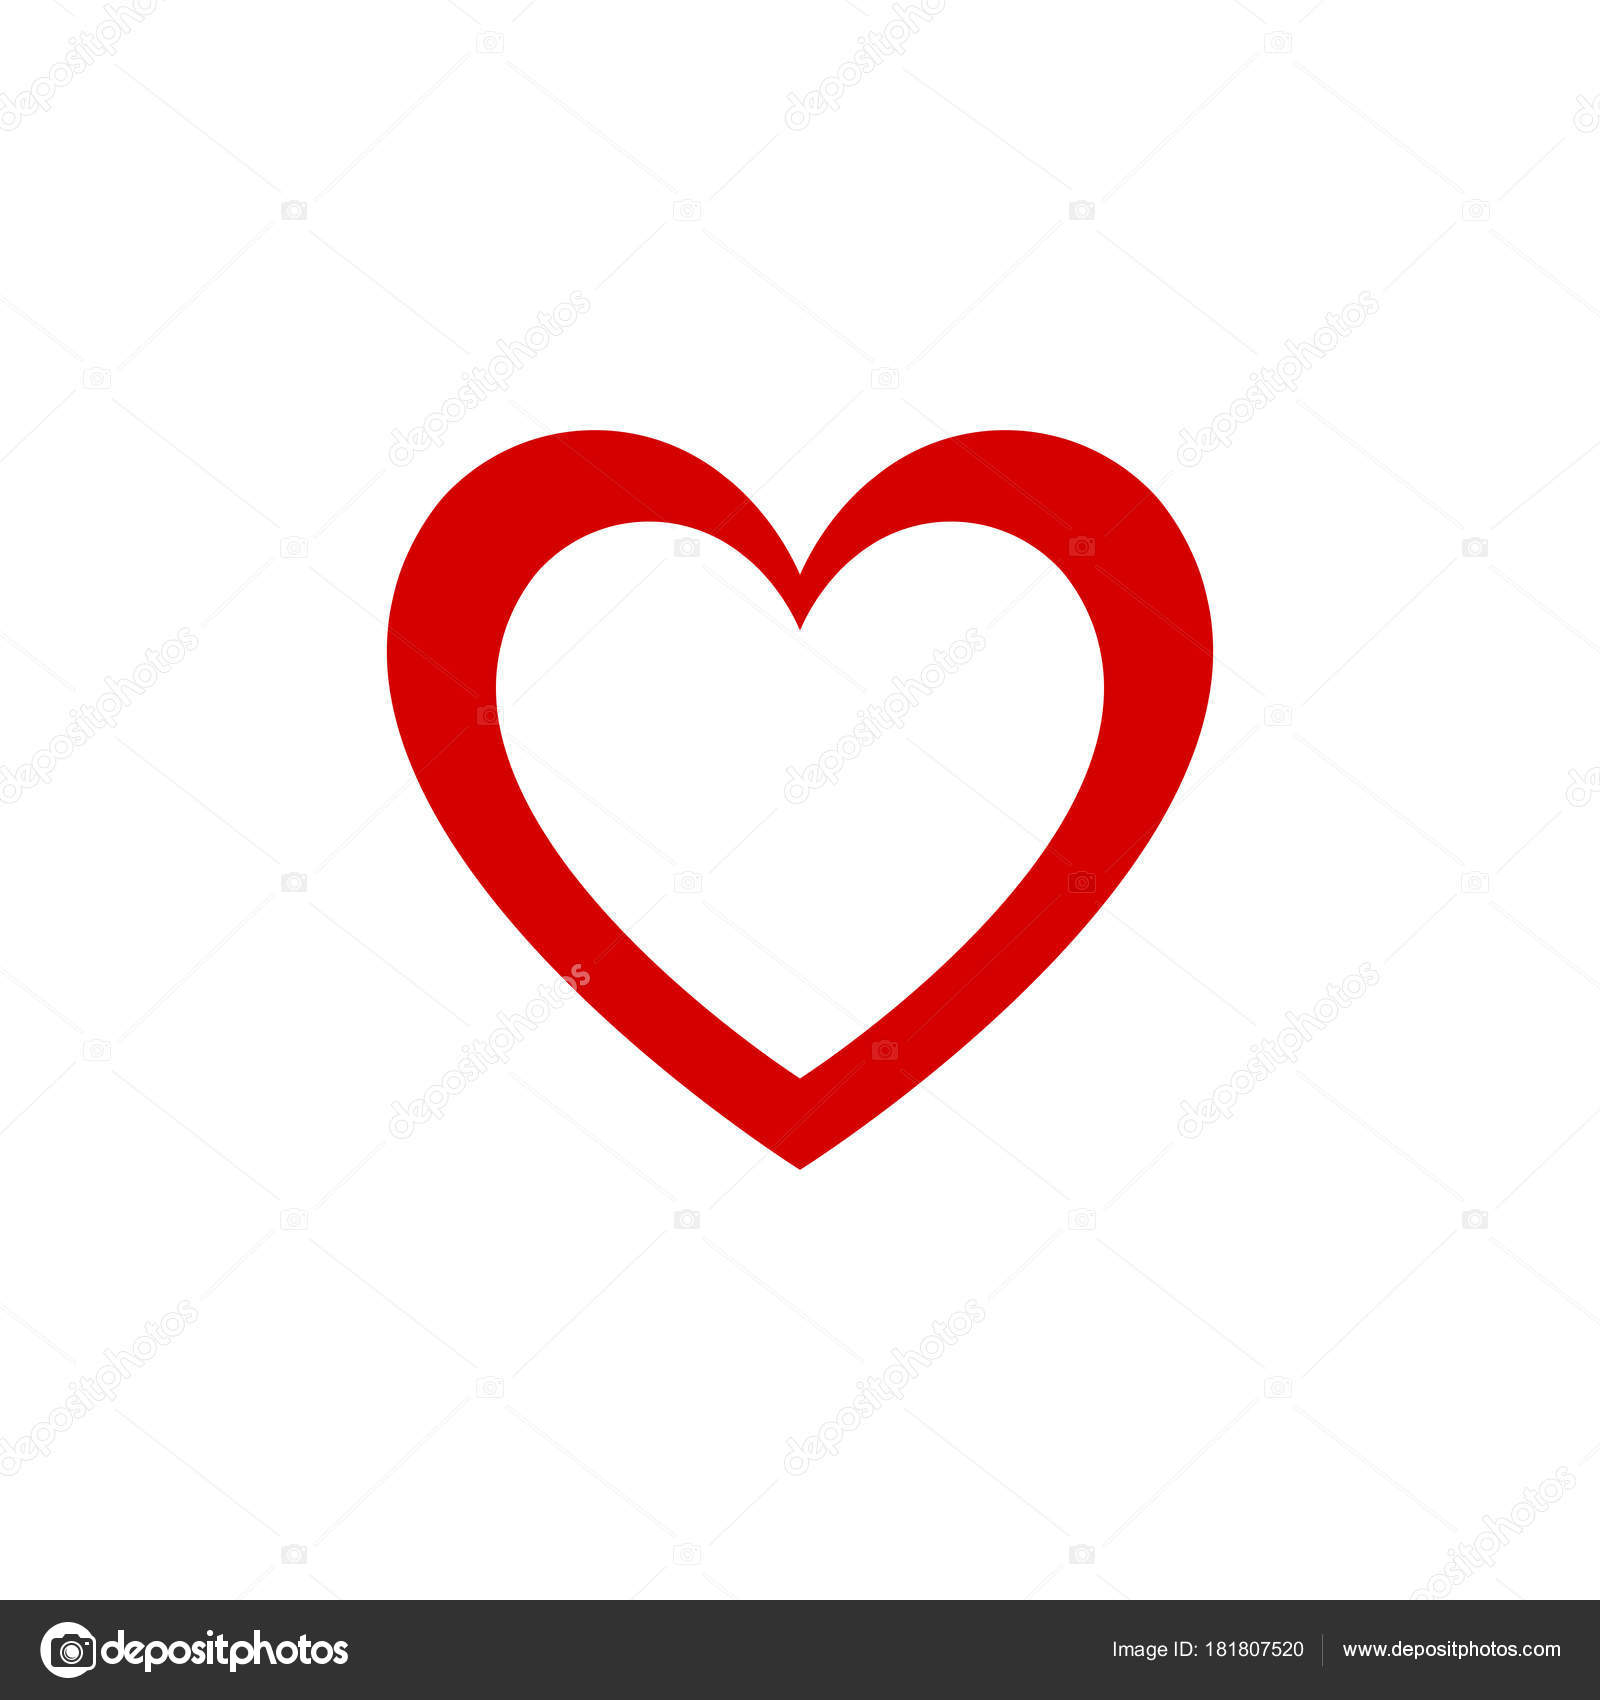 Red Heart Design Graphic Vector Icon Valentines Day And Lovers